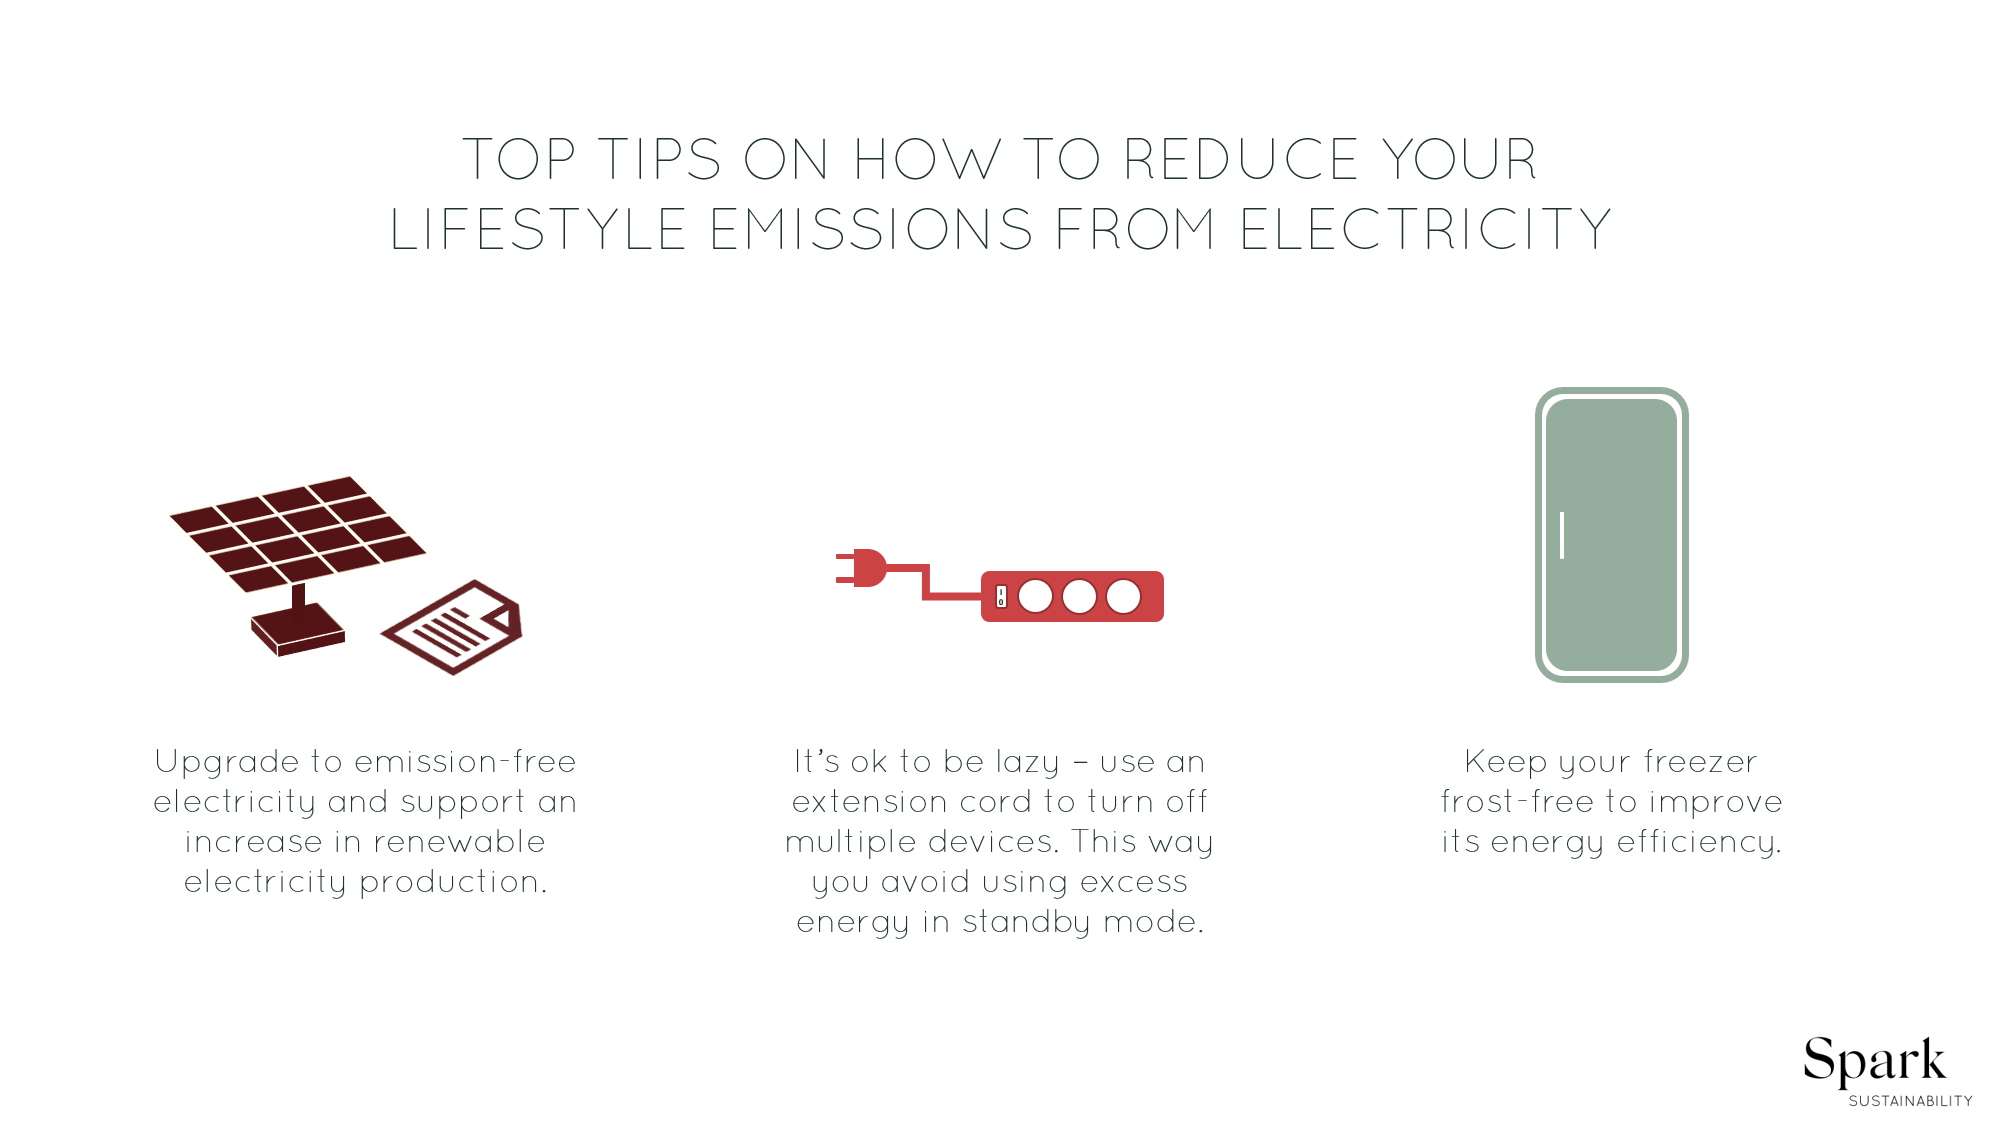 picture with 3 tips on how to reduce lifestyle emissions from electricity